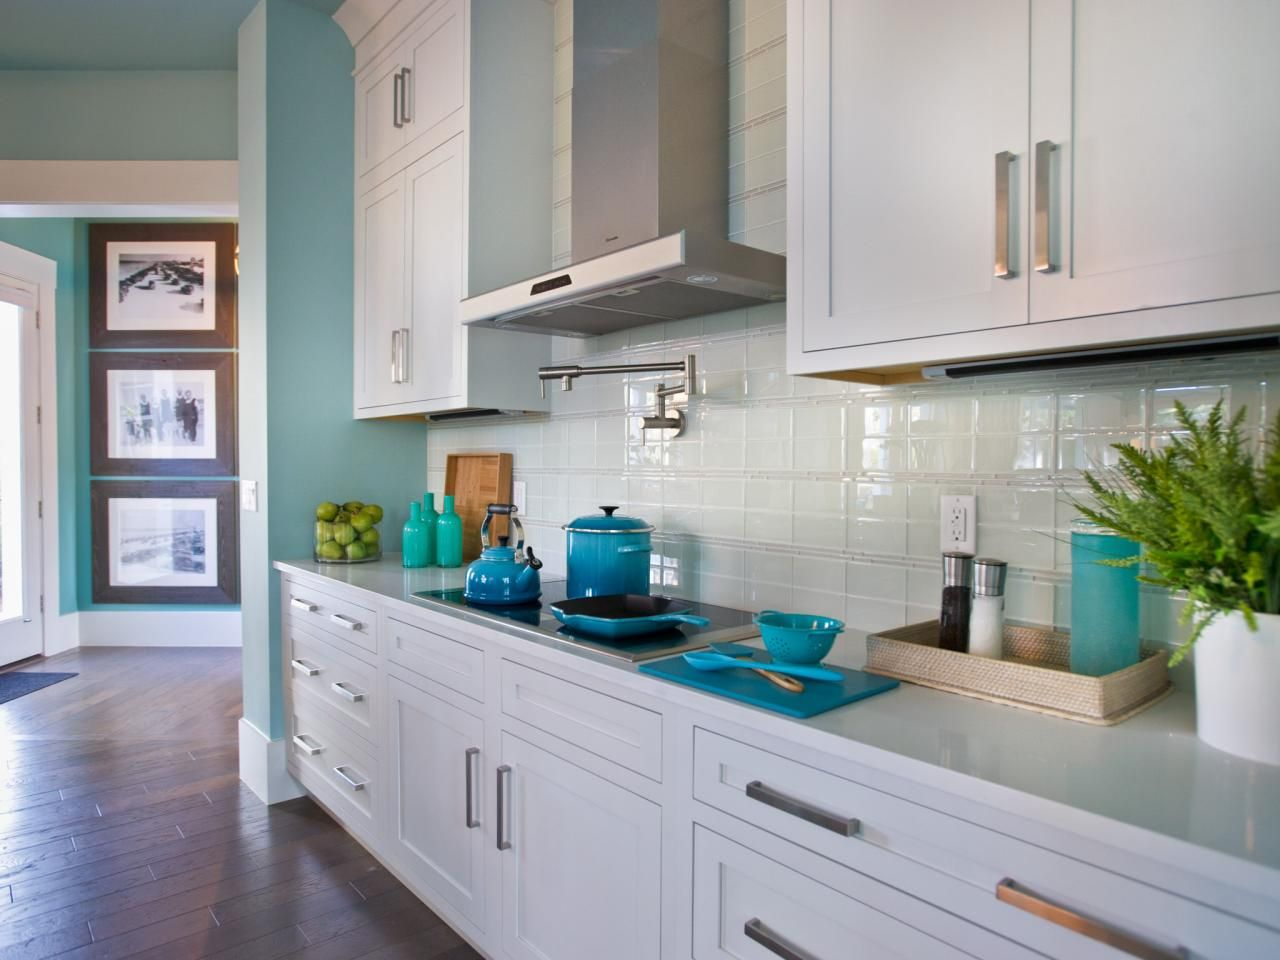 Glass Tile Backsplash Ideas: Pictures \u0026 Tips From | White subway ...